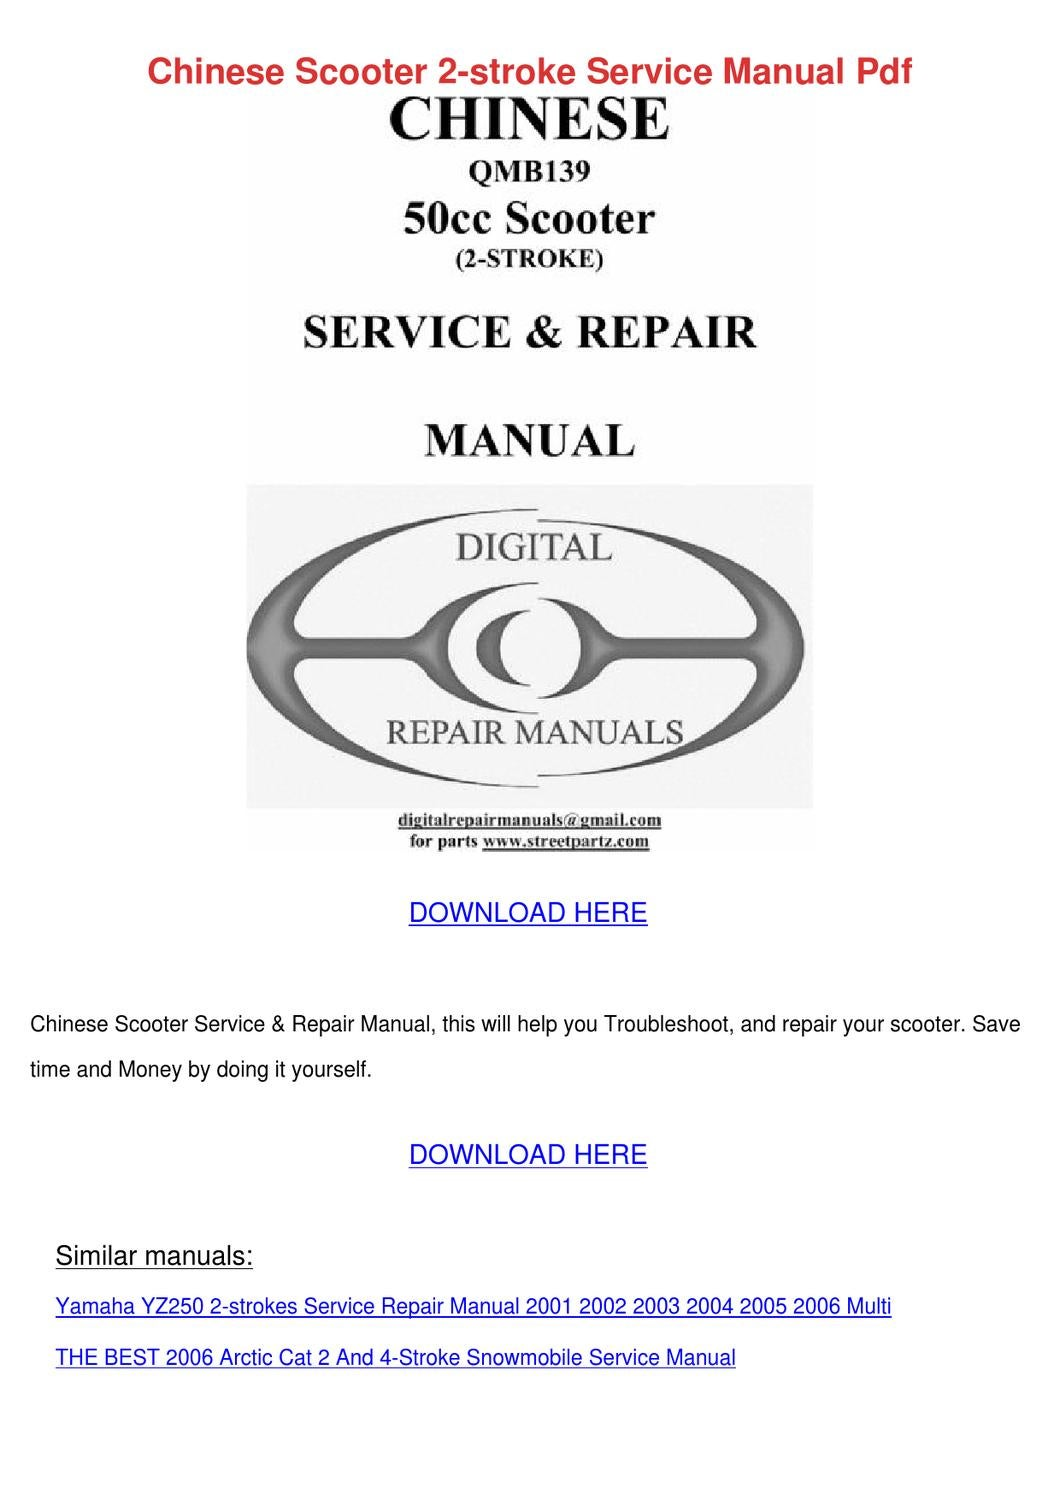 Chinese Scooter 2 Stroke Service Manual Pdf By Ashley Poffenberger 1965 Tecumseh Engine Diagram Issuu